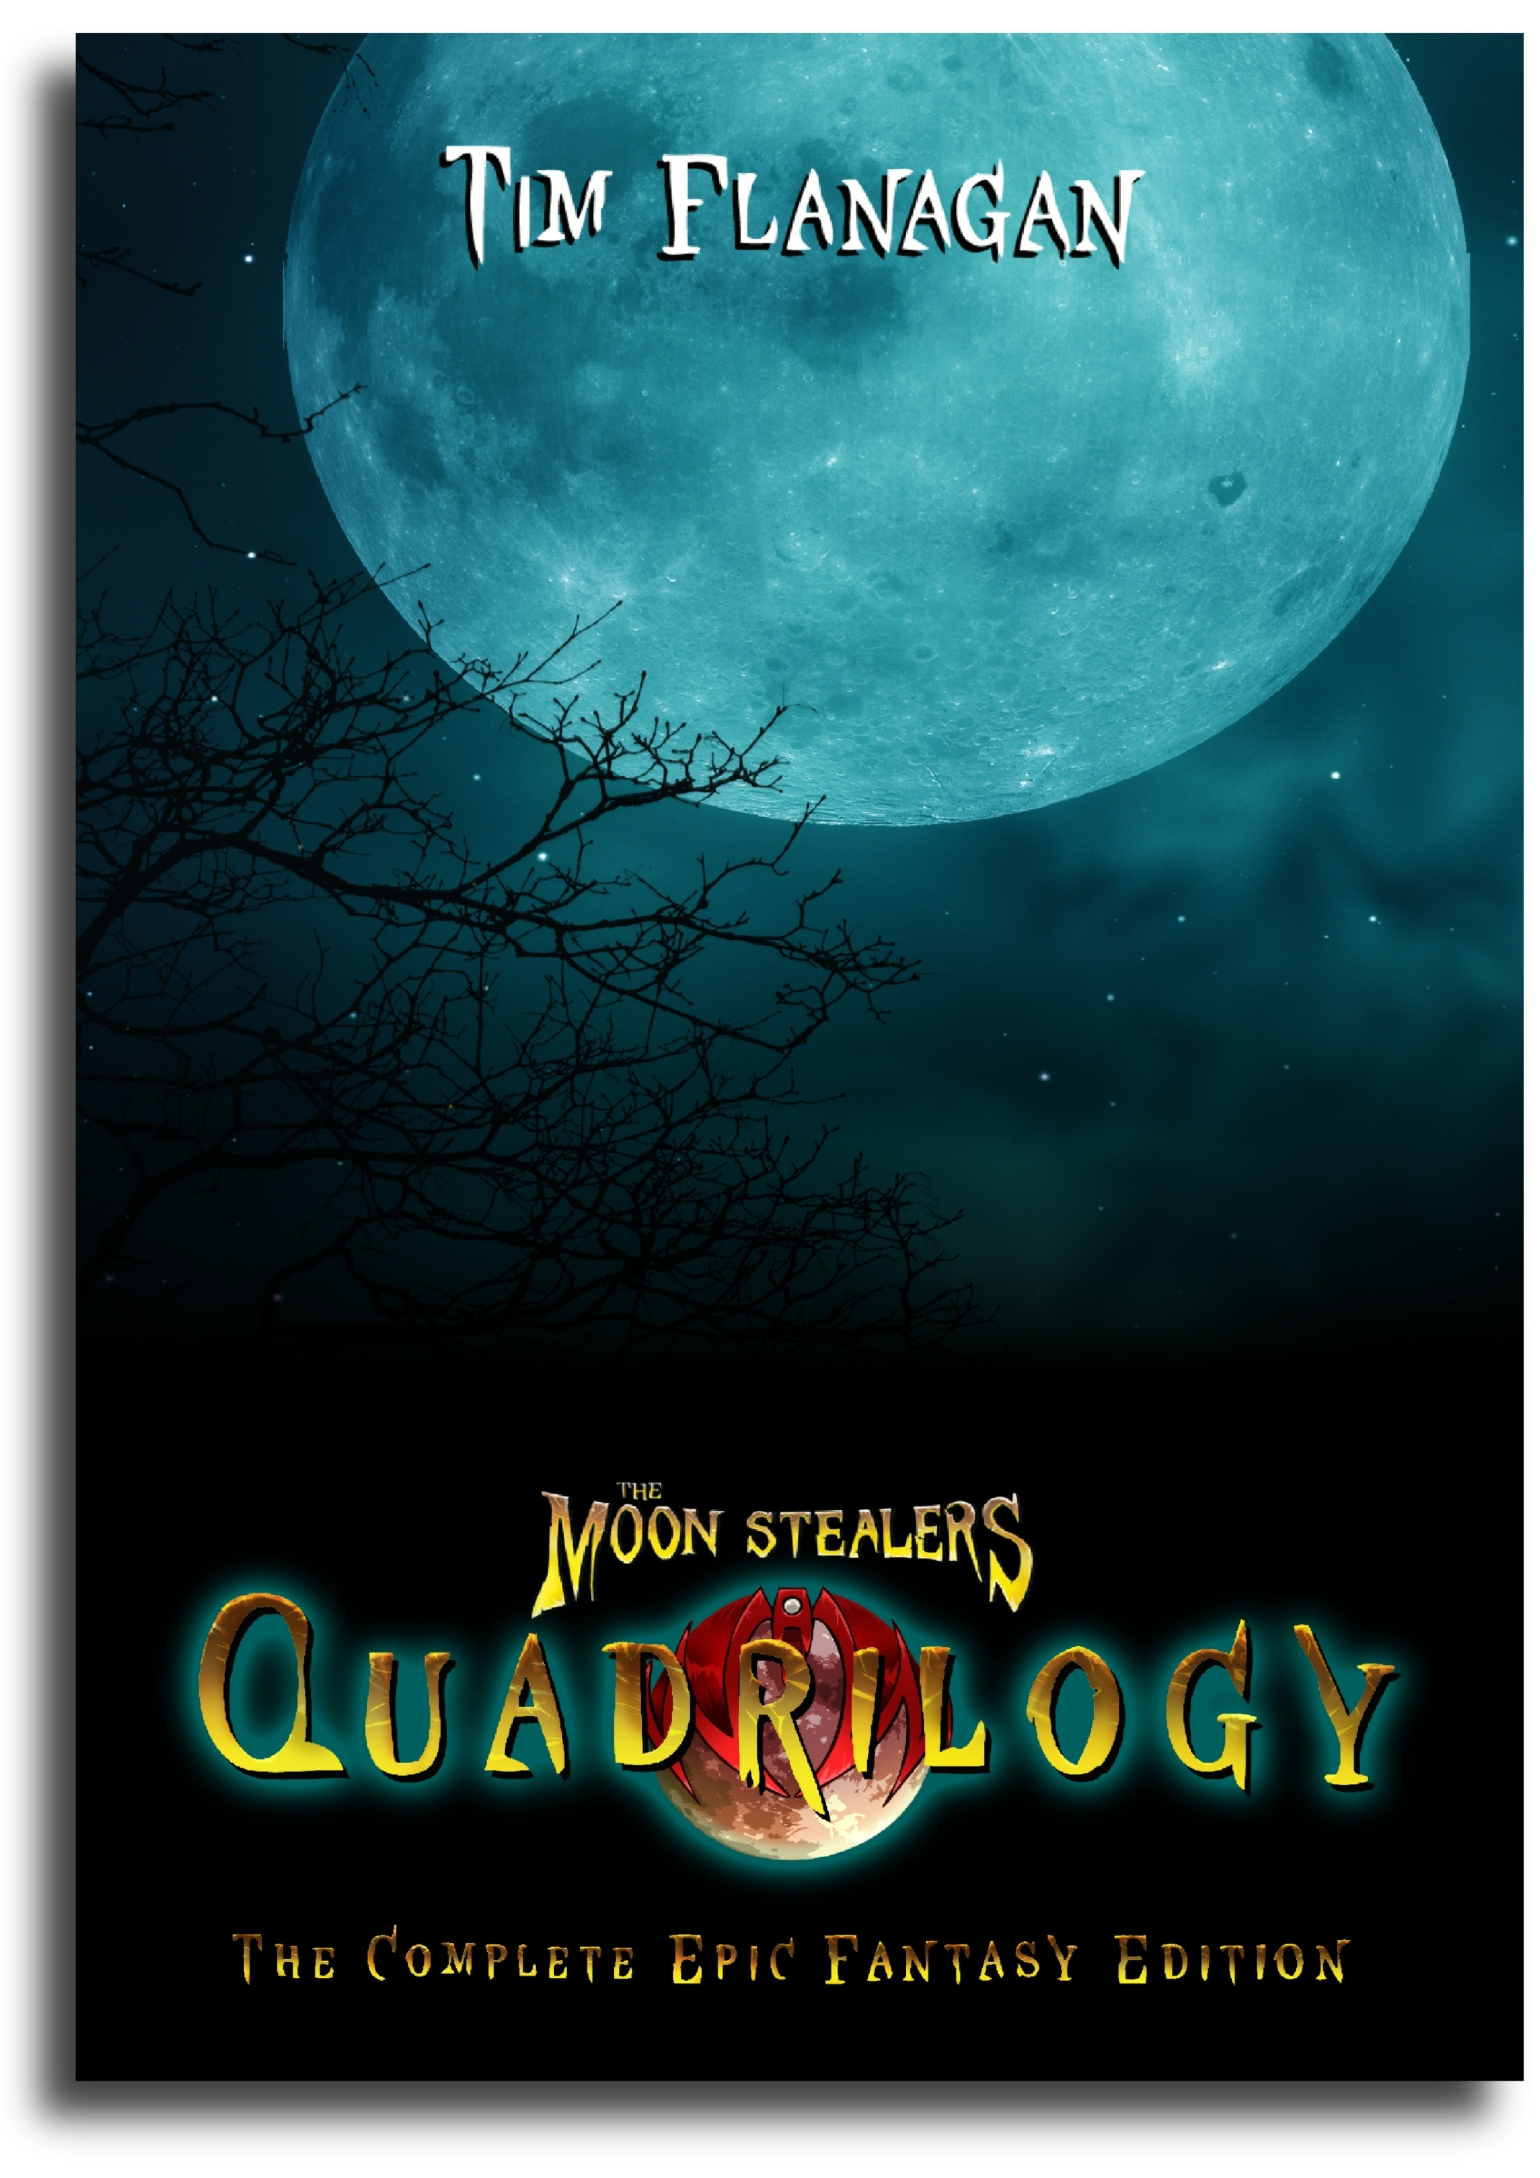 The Moon Stealers Quadrilogy